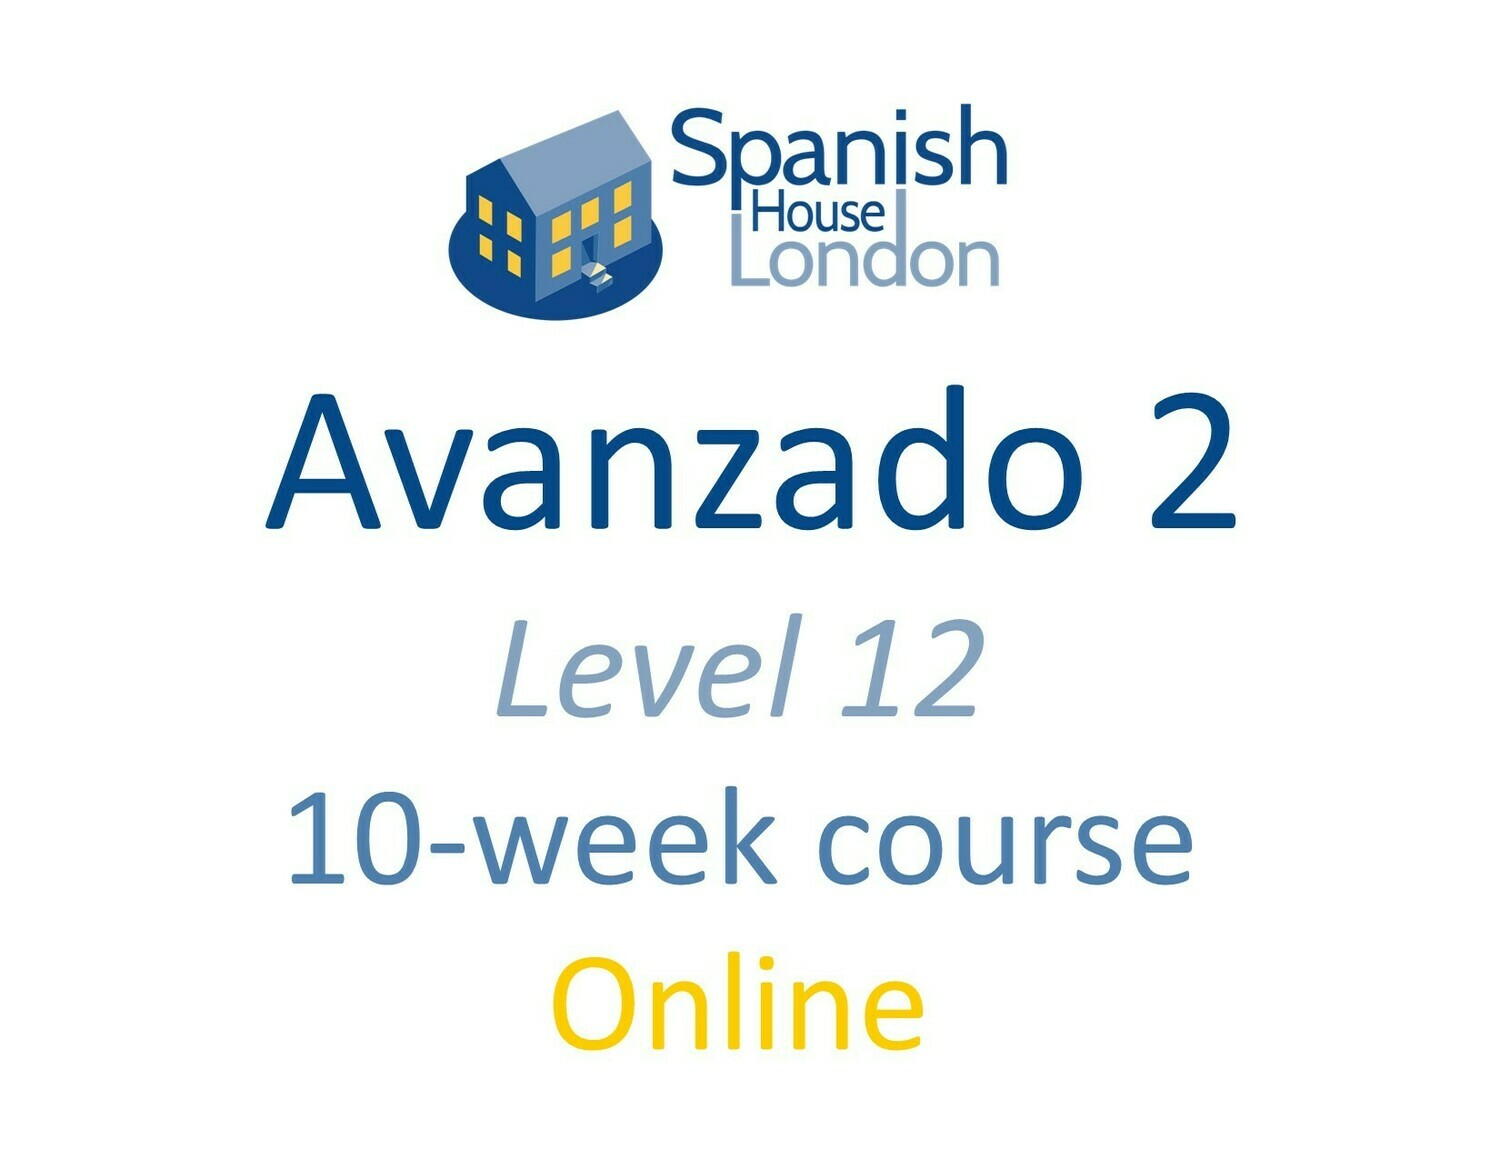 Avanzado 2 Course starting on 4th August at 7.30pm